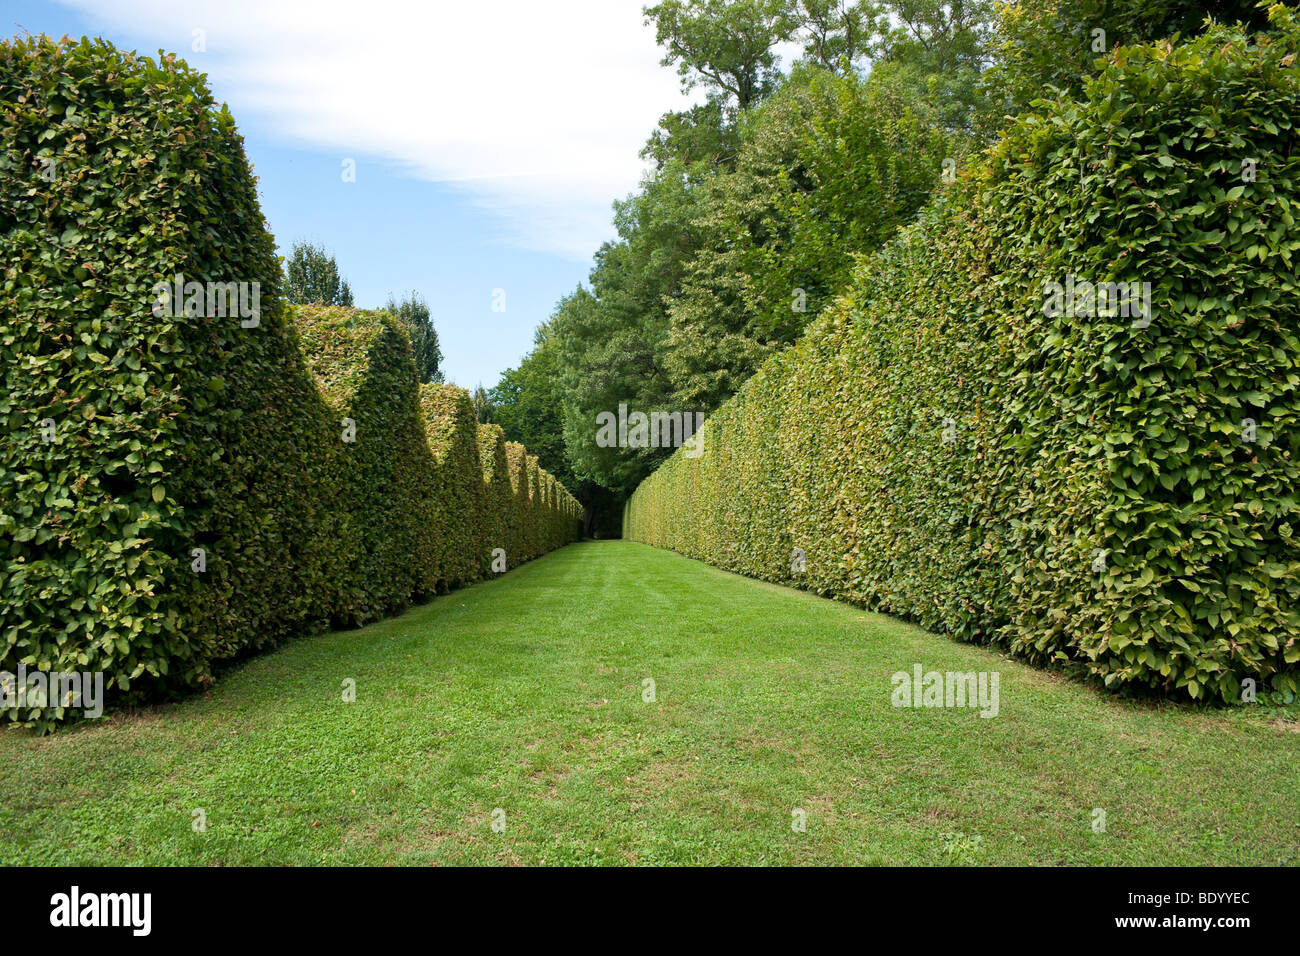 Burgundy France 2009 the Chateau de Cormatin hedges of the maze - Stock Image